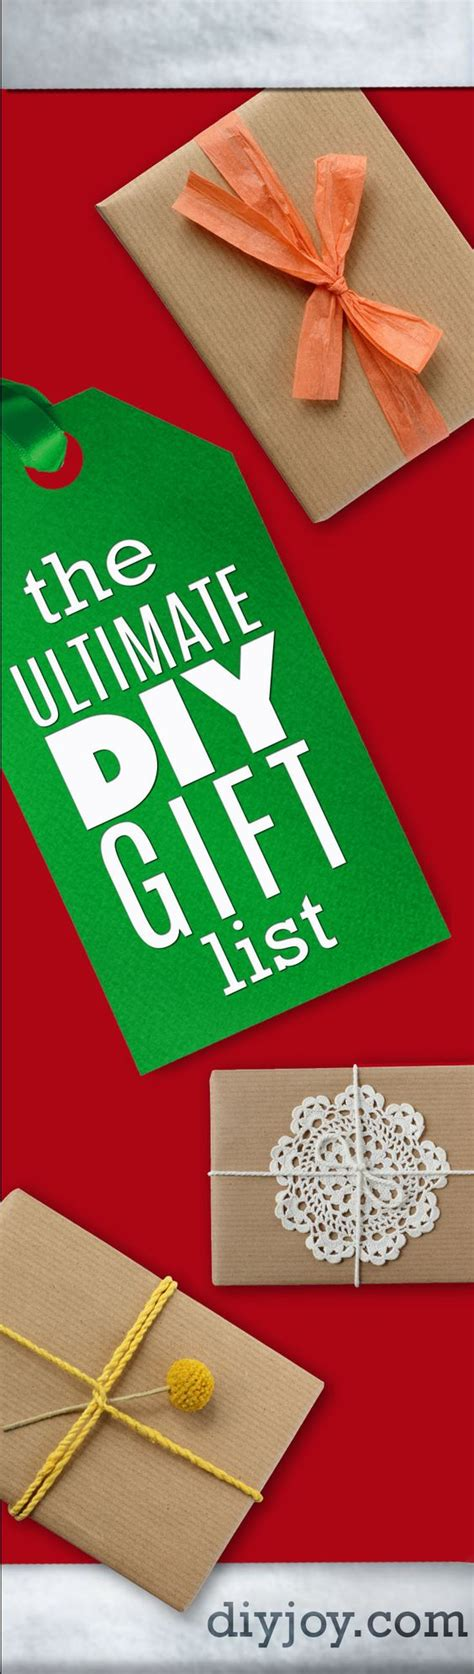 diy christmas gifts homemade and gifts on pinterest